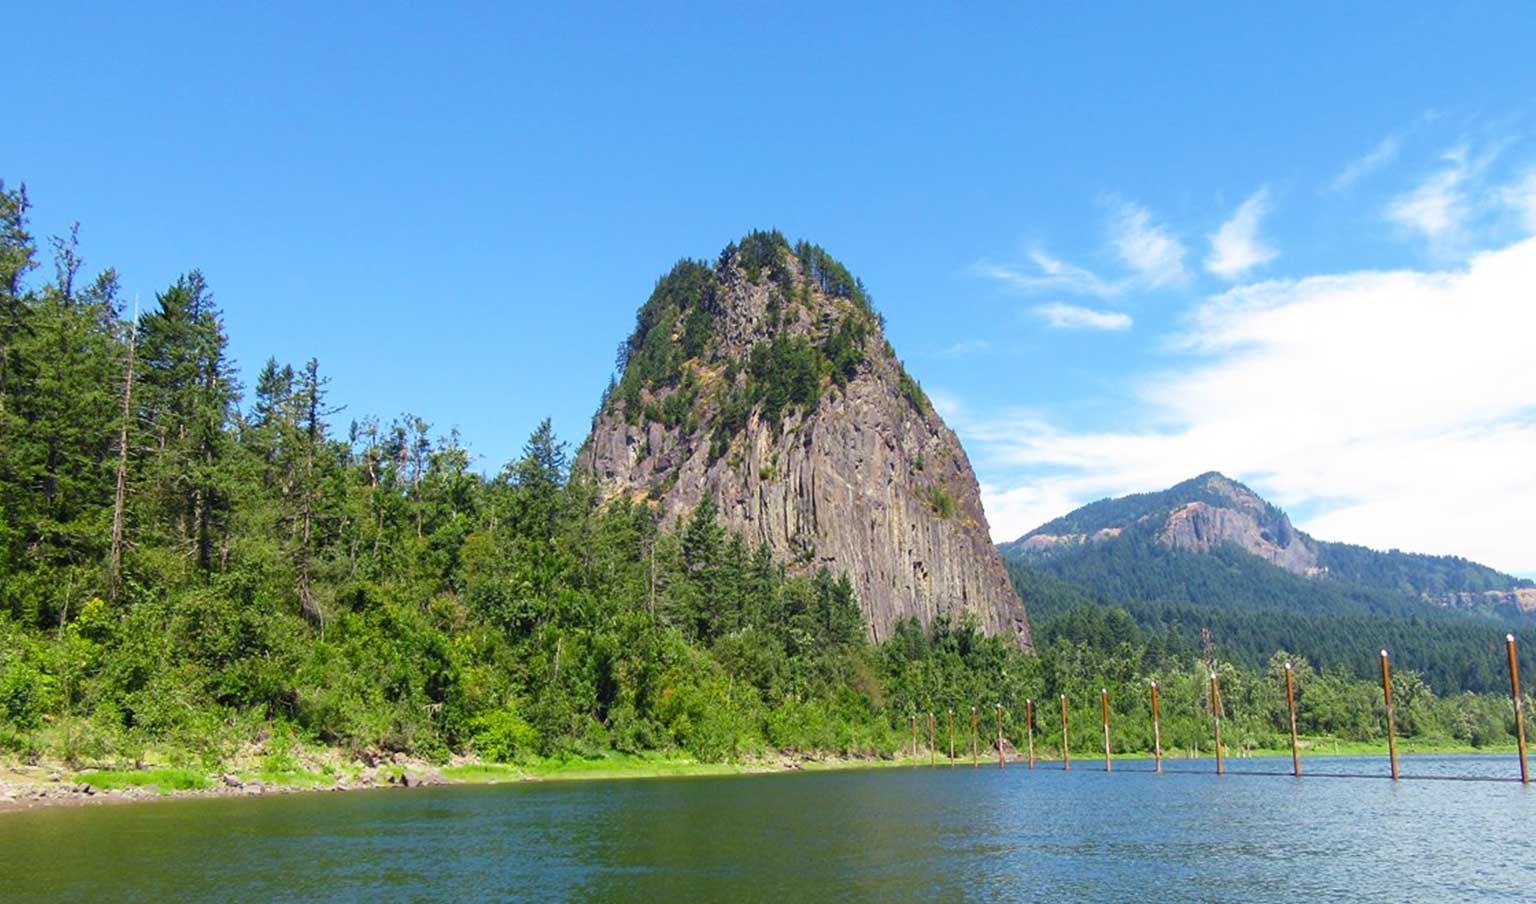 Beacon Rock State Park, a short drive from Vancouver WA is pictured with beacon rock towering above the trees and the Columbia River in the foreground